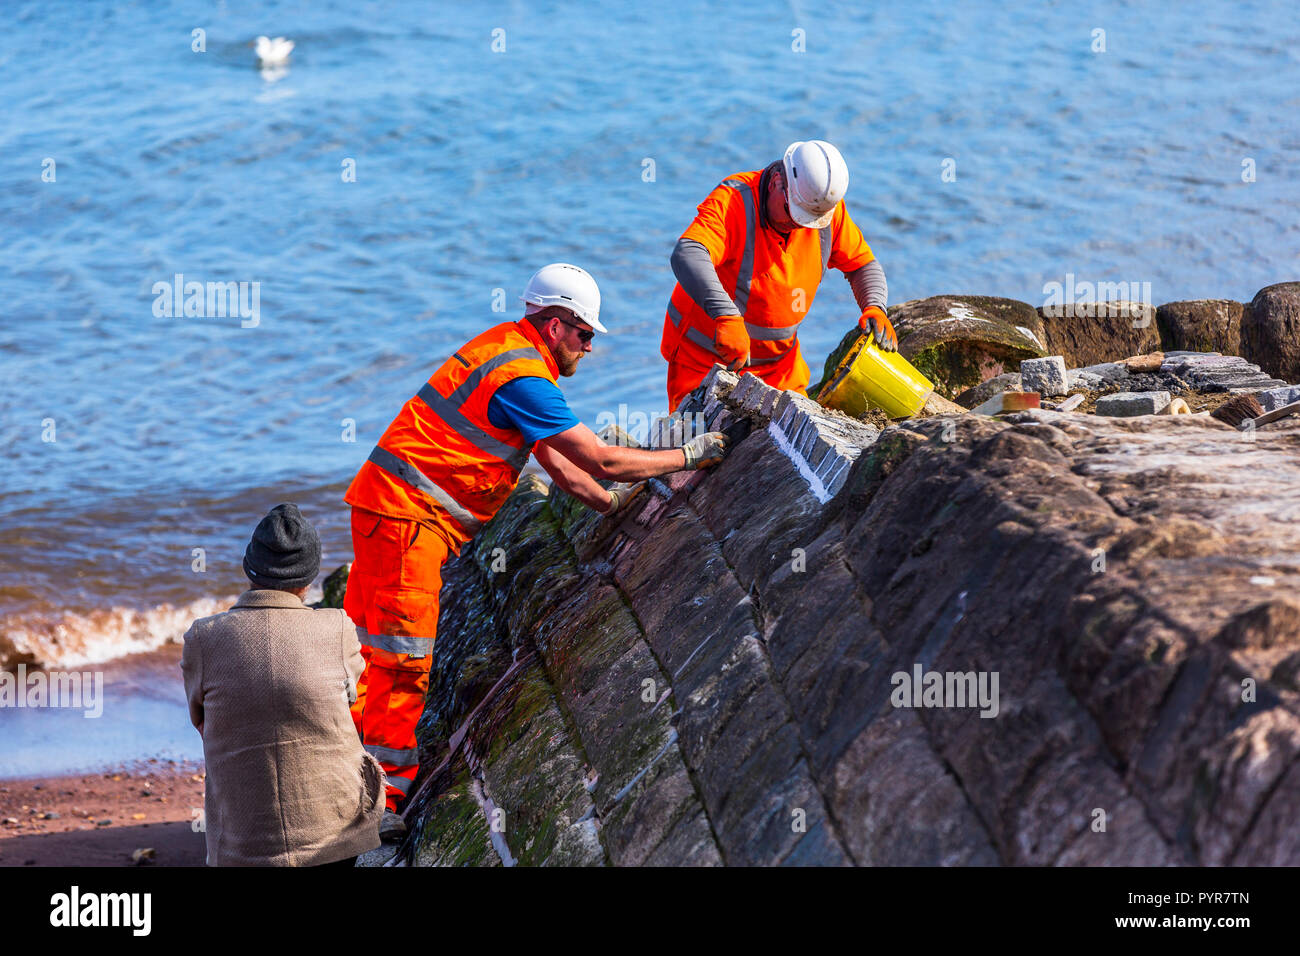 Repairing and rebuilding the sea wall defenses after the 2014 storms in Dawlish, Devon, UK. - Stock Image